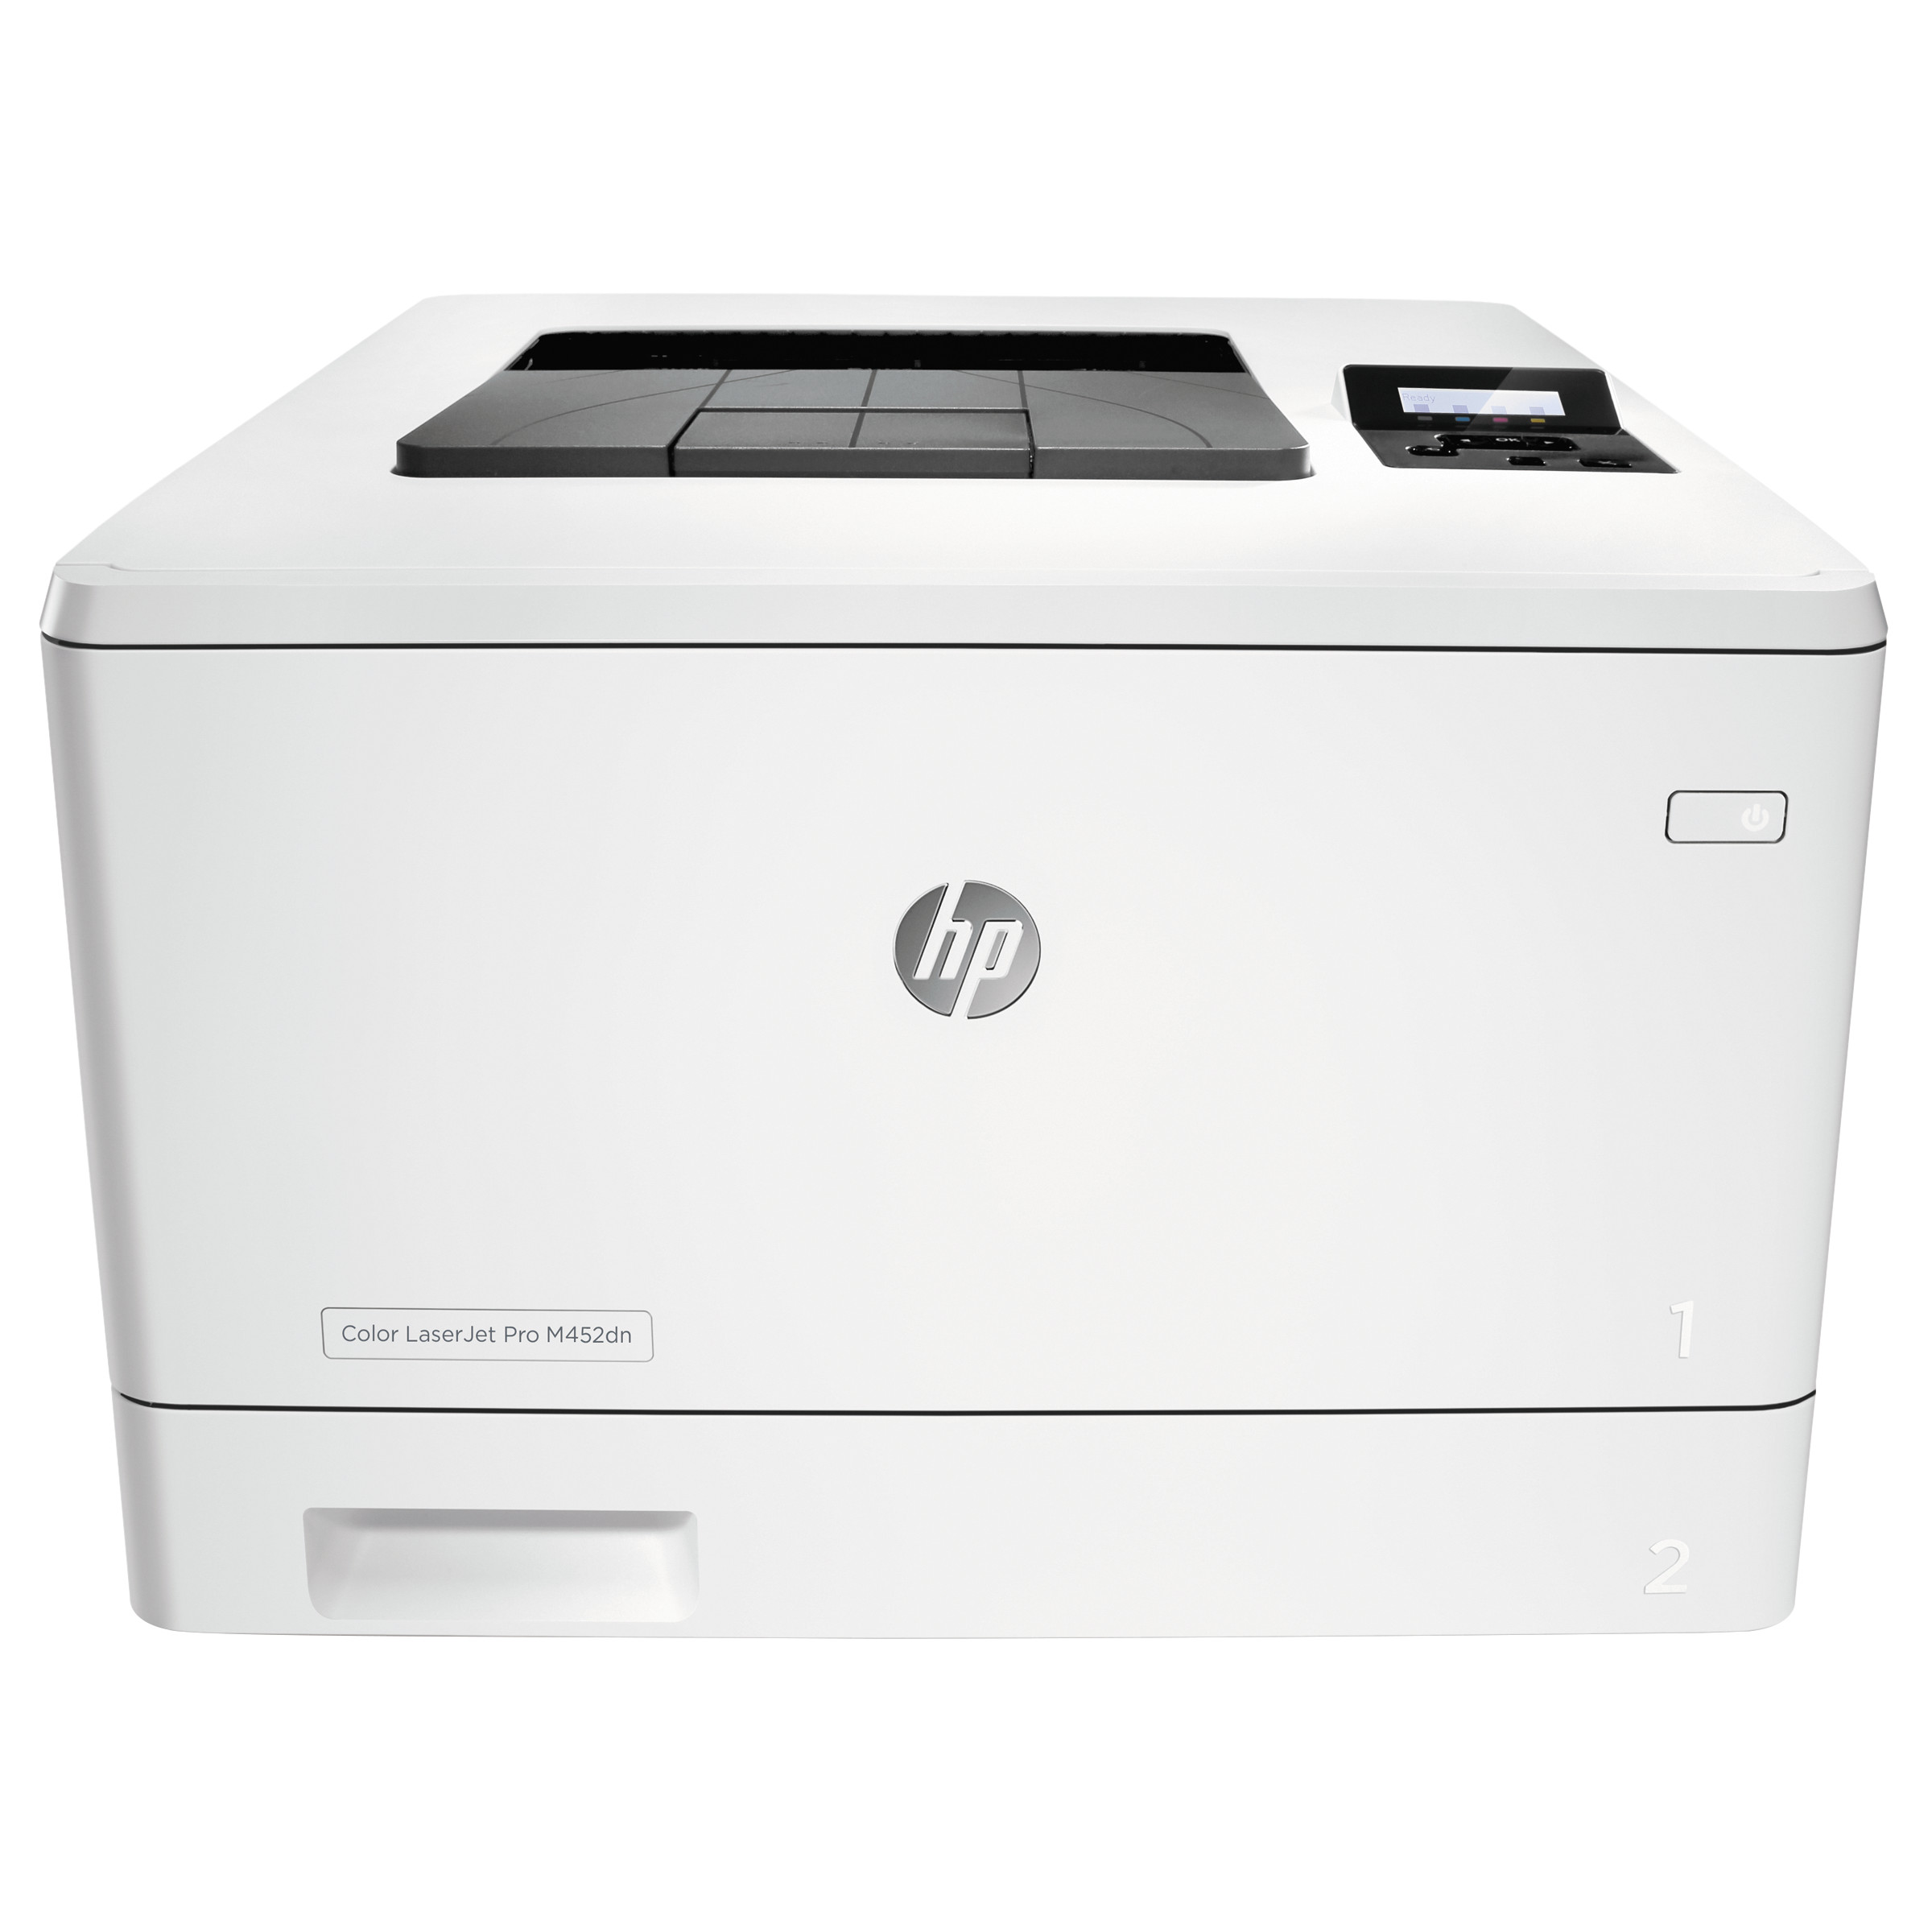 hp color laserjet pro m452dn laser printer